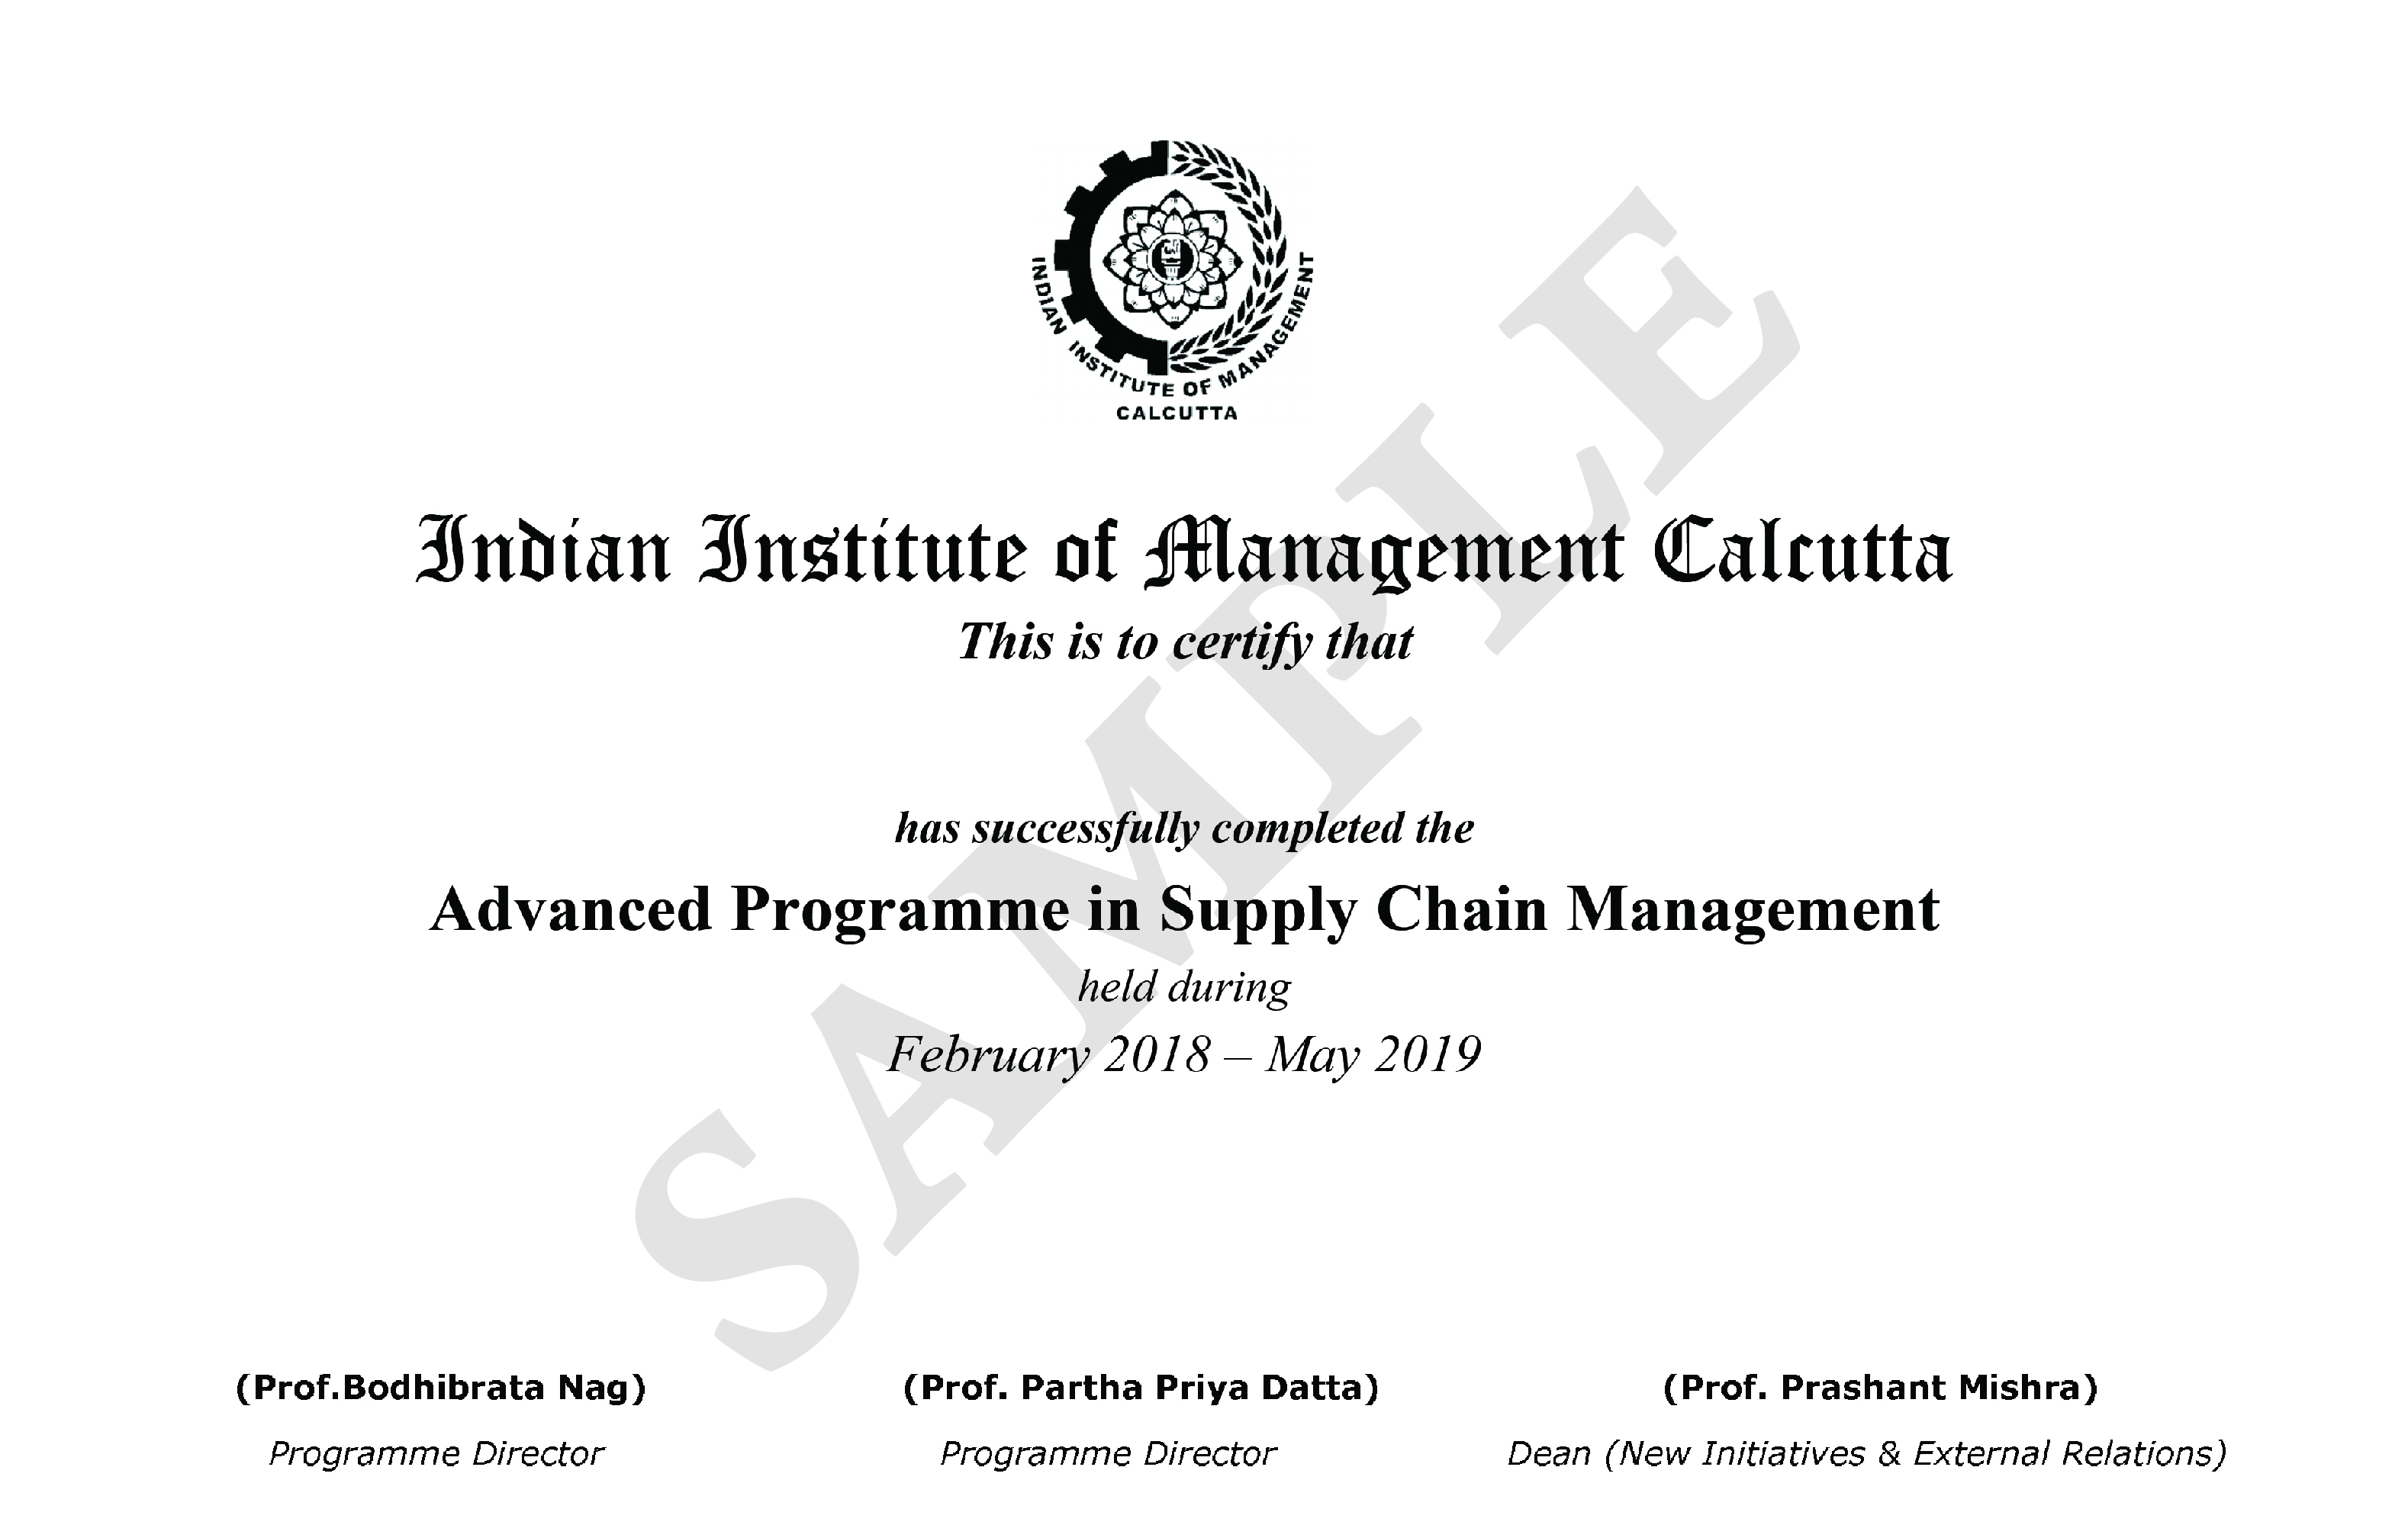 Advanced Programme in Supply Chain Management Courses (APSCM